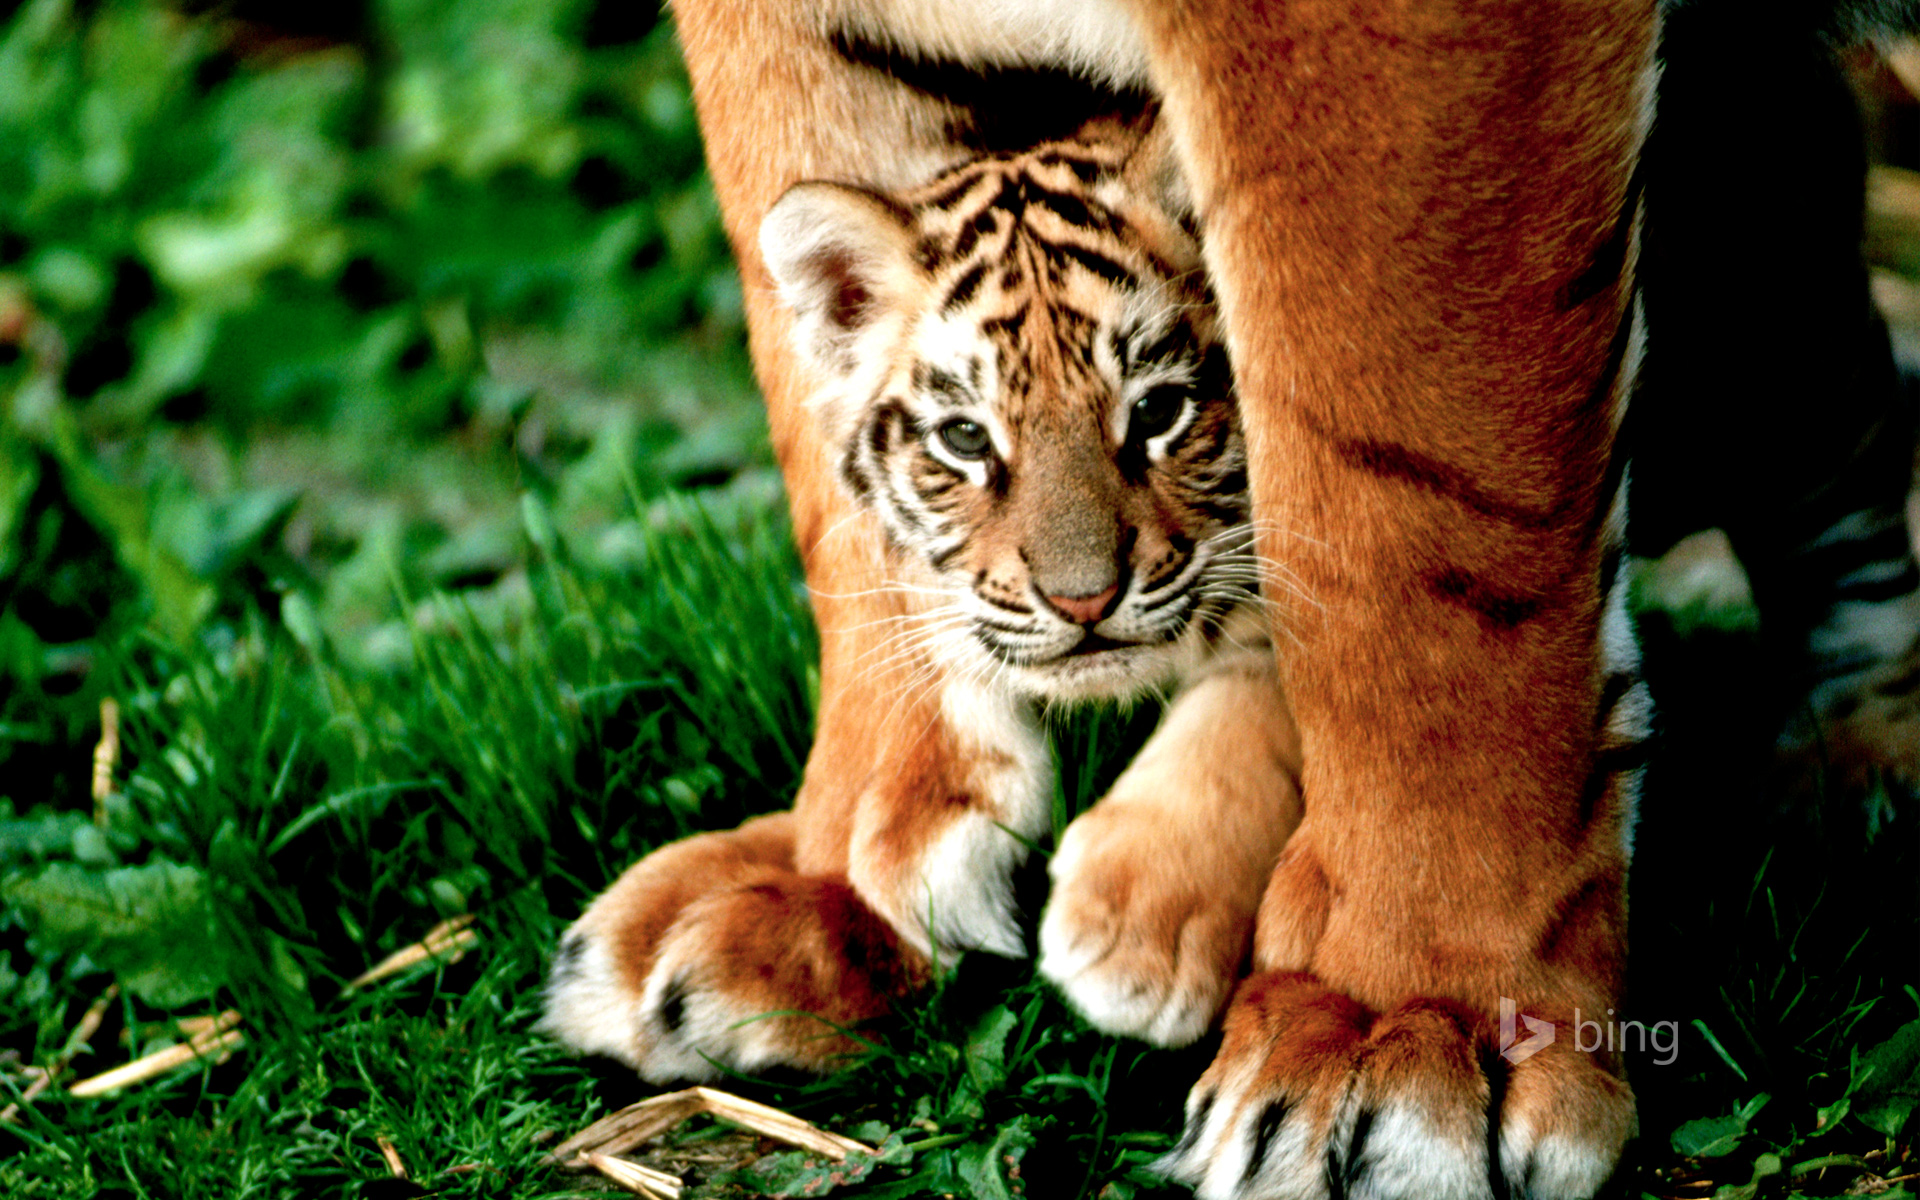 A six-week-old Bengal tiger cub peers out from between its mother's front legs